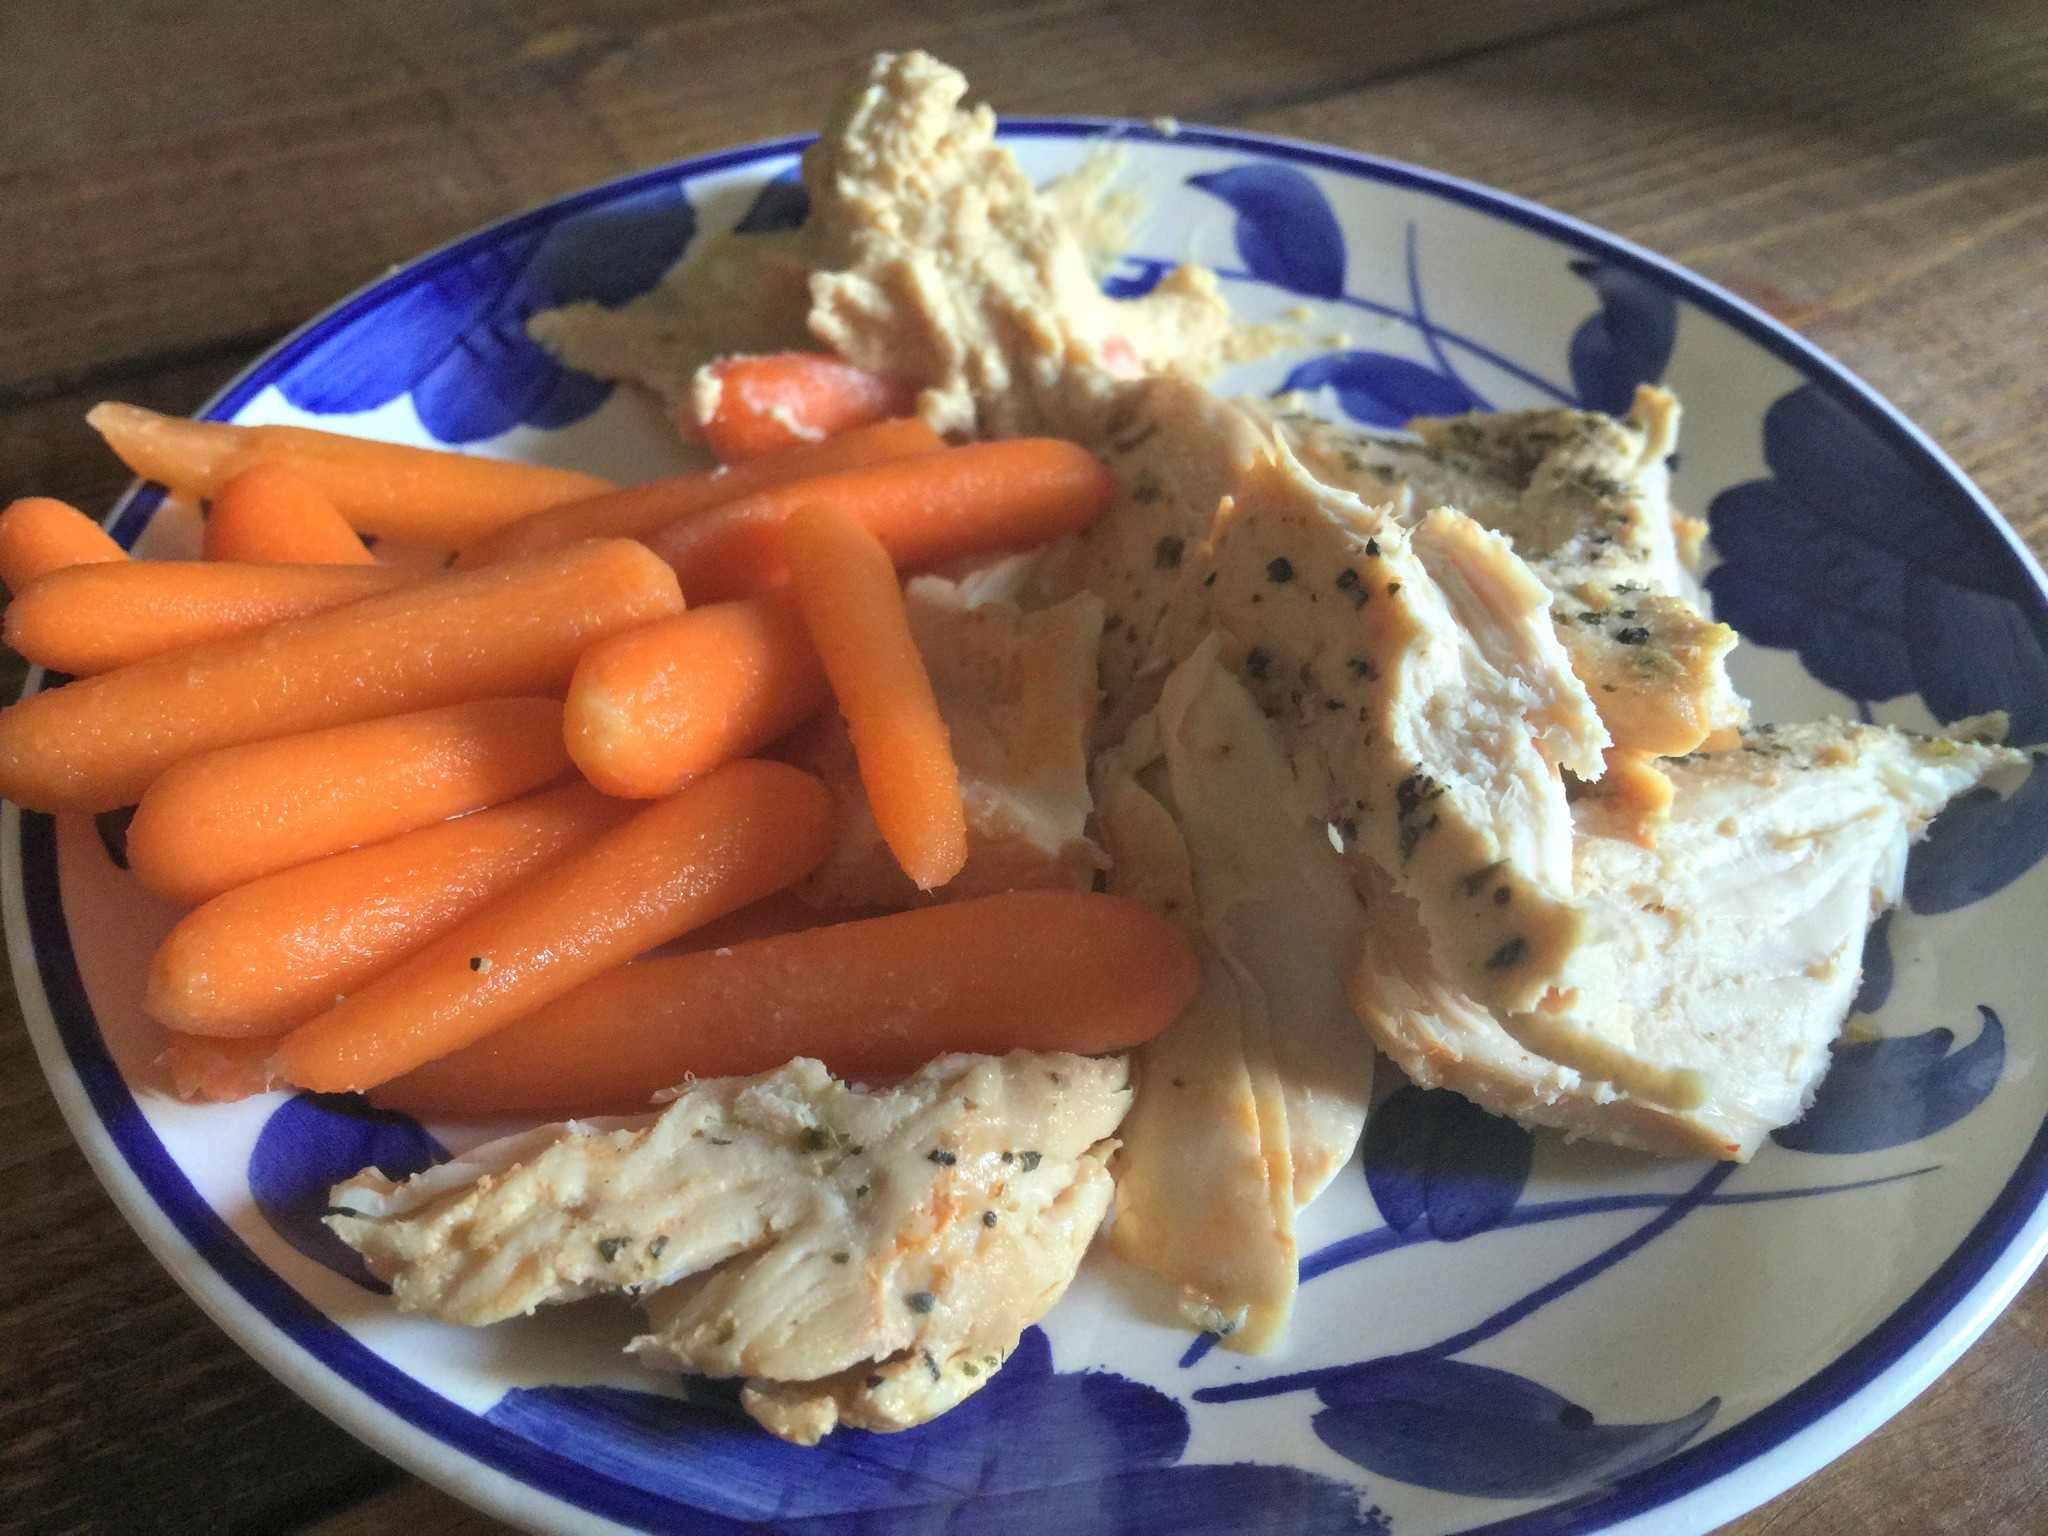 chicken, carrots, and hummus